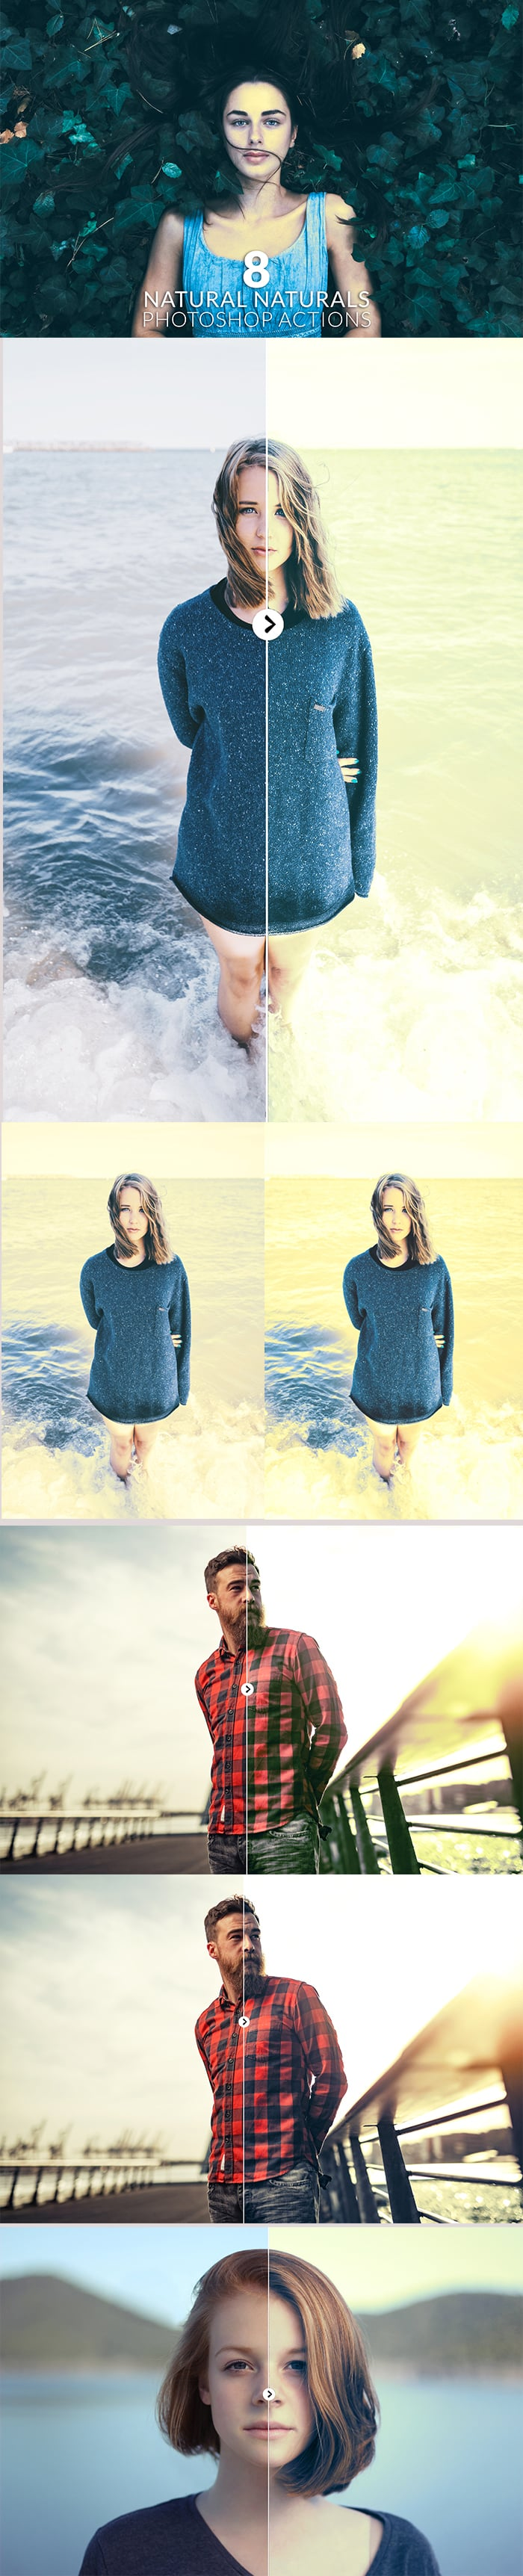 Photoshop Actions for Photographers. $9 Only! - 700px natural naturals